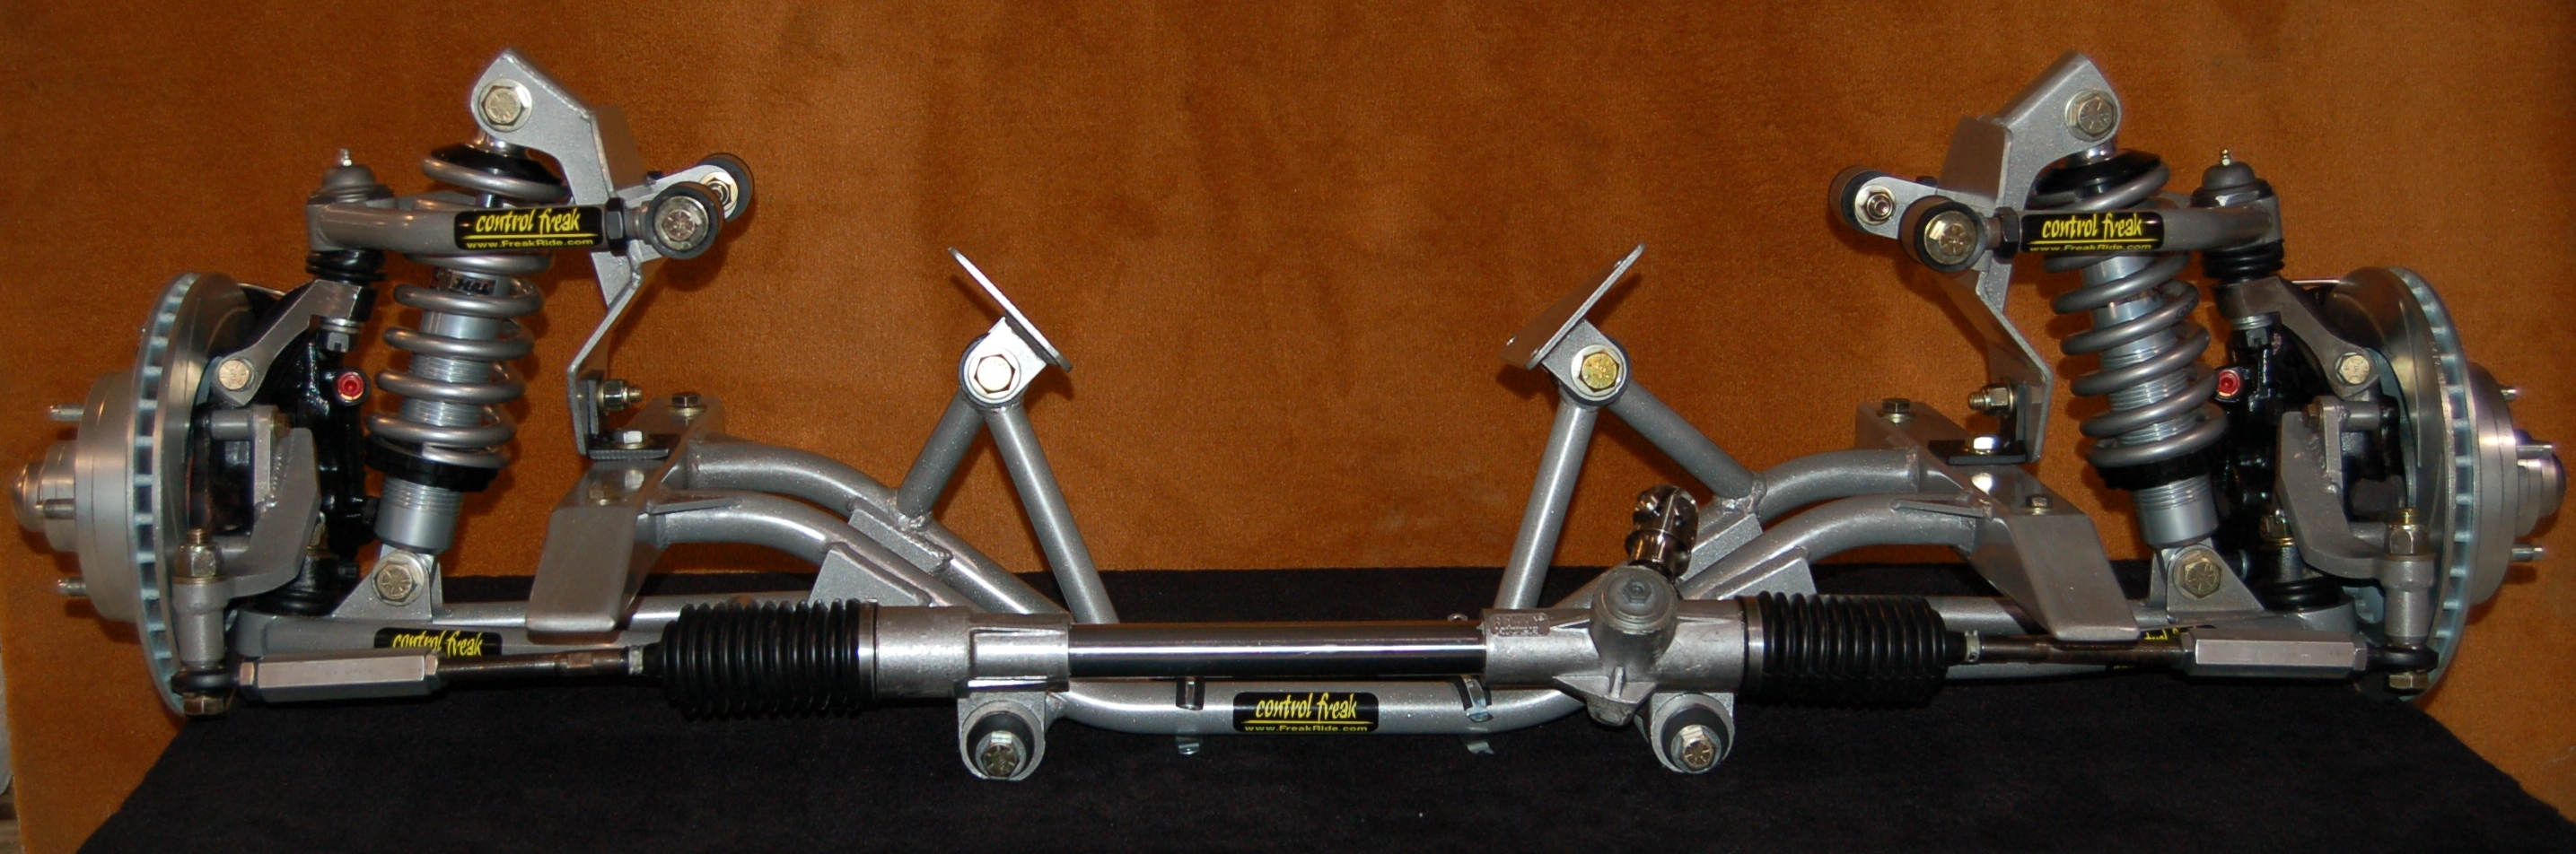 Independent Front Suspension Ifs Systems Amc